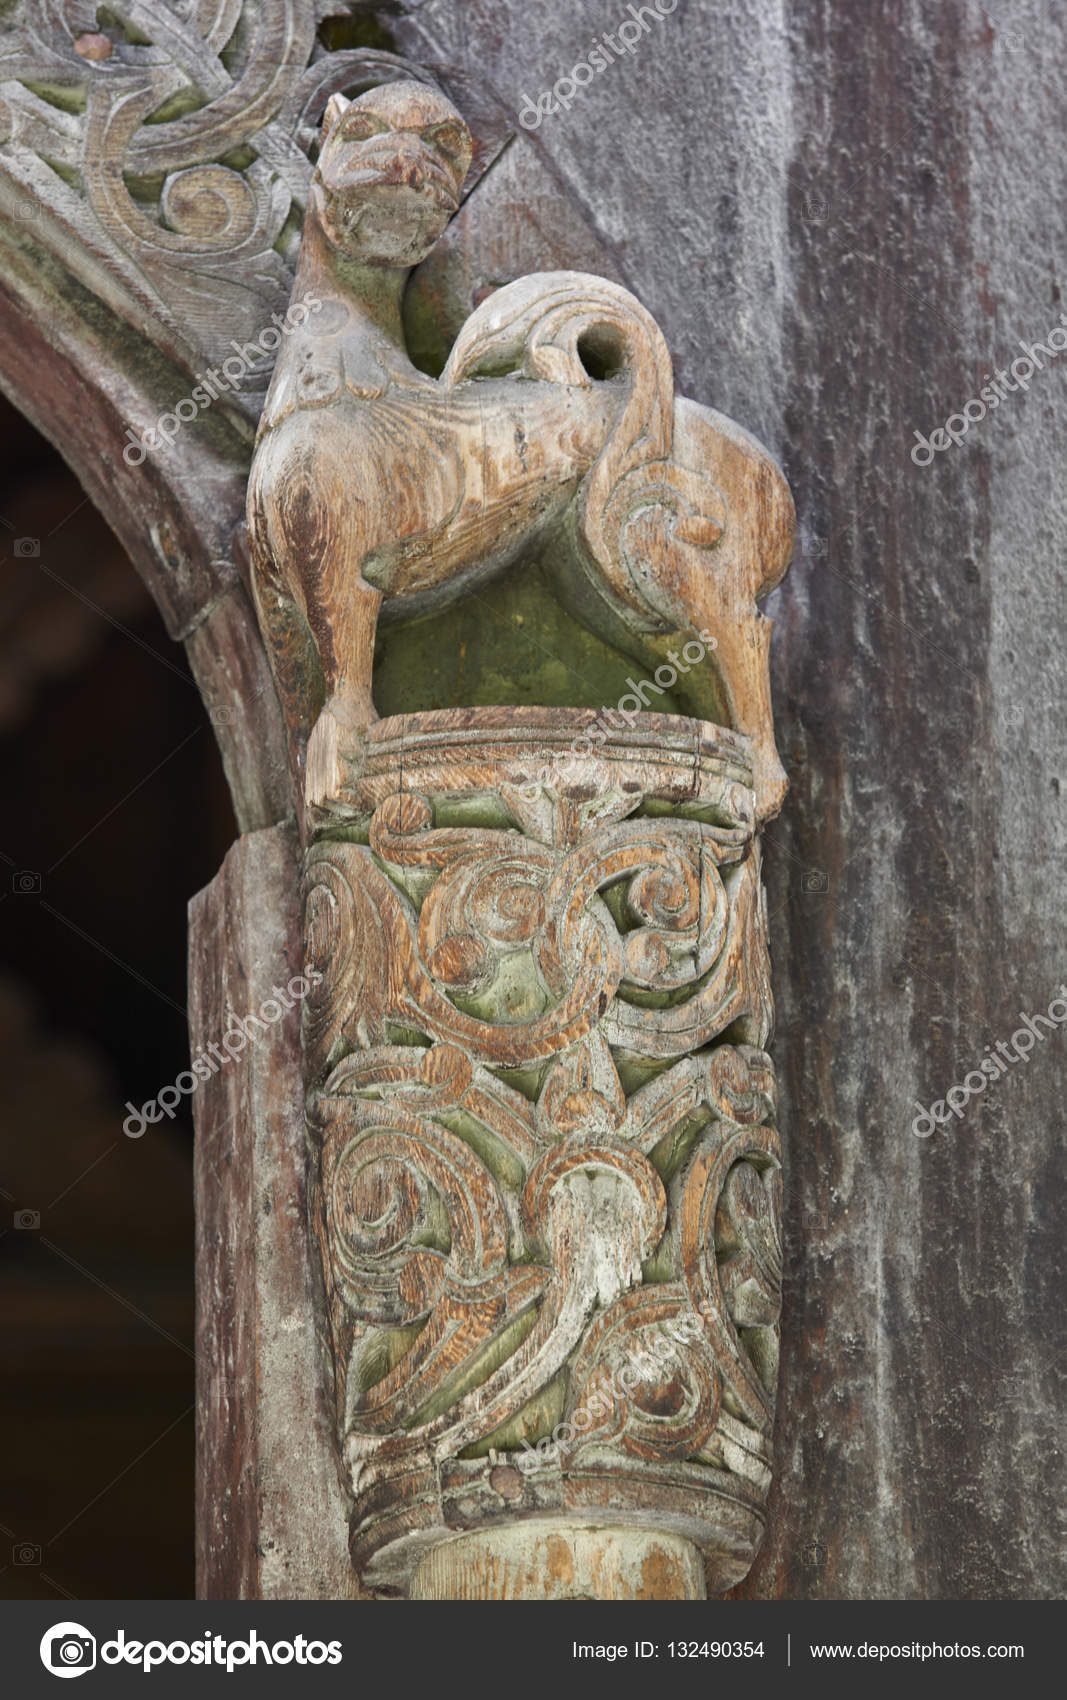 Norwegian ancient wooden carving nature forms borgund church